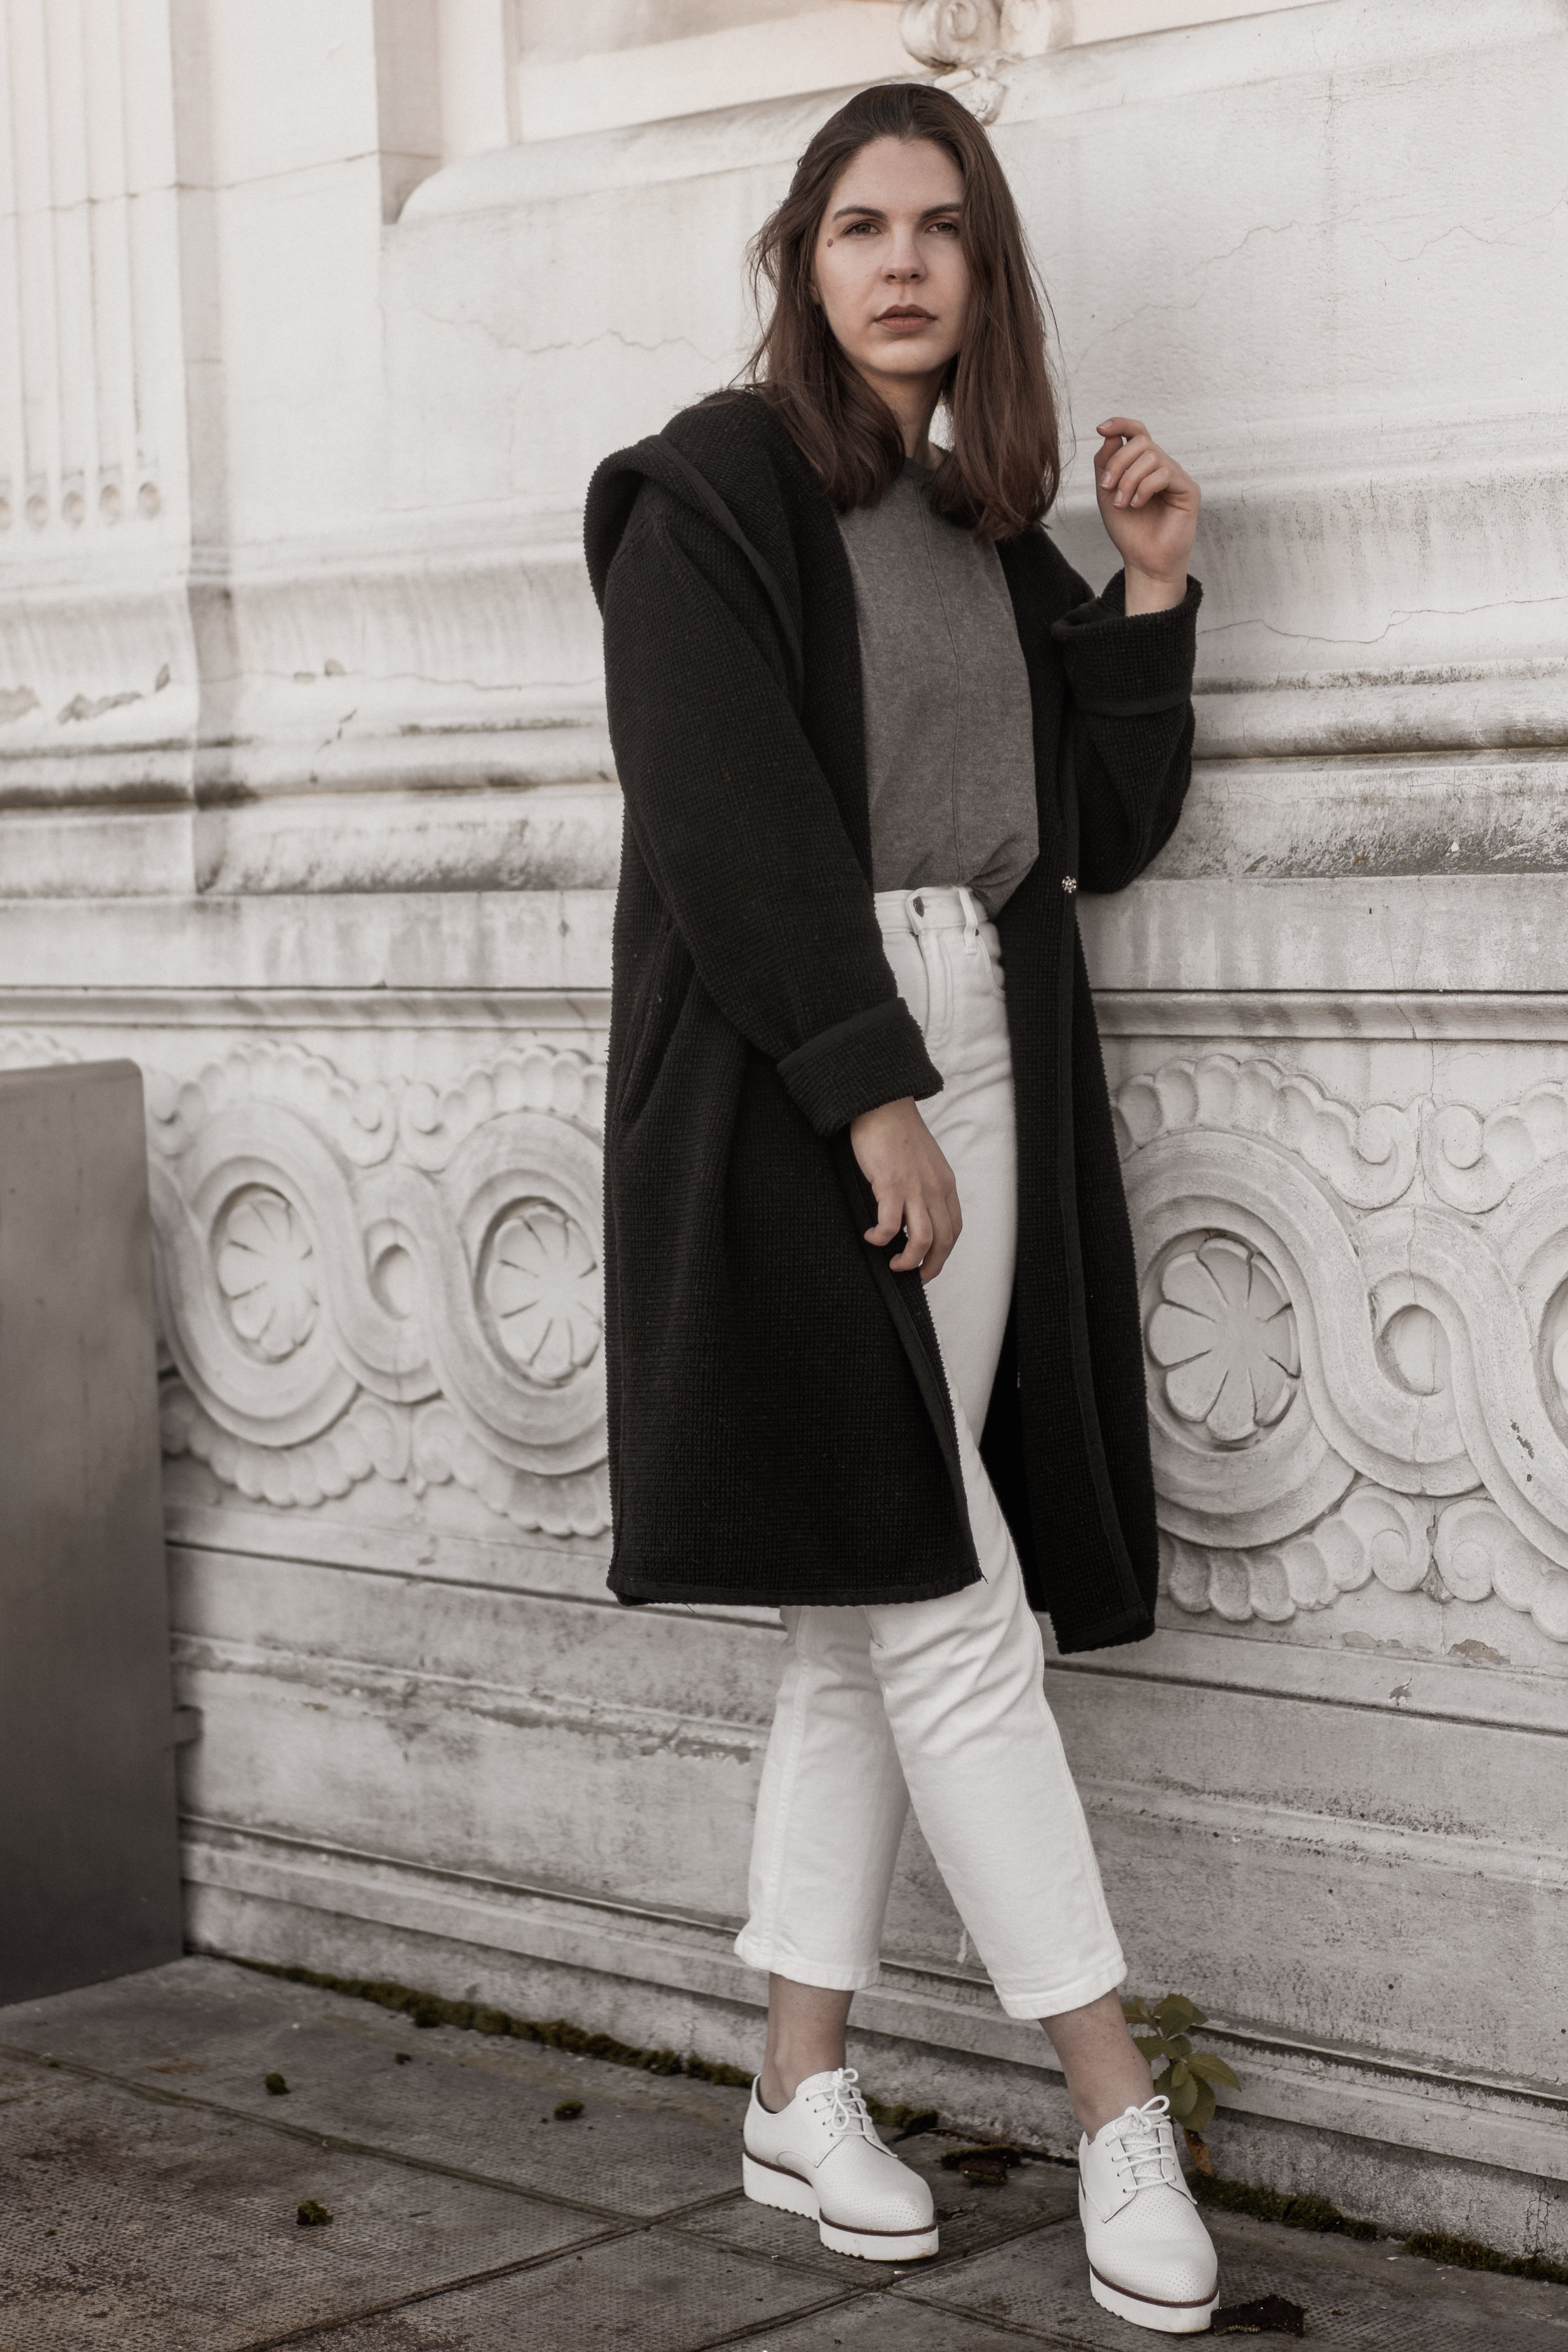 Sustainable staples— Everlane  jeans, secondhand sweater,  Printa  coat, and  Bahatika  shoes.